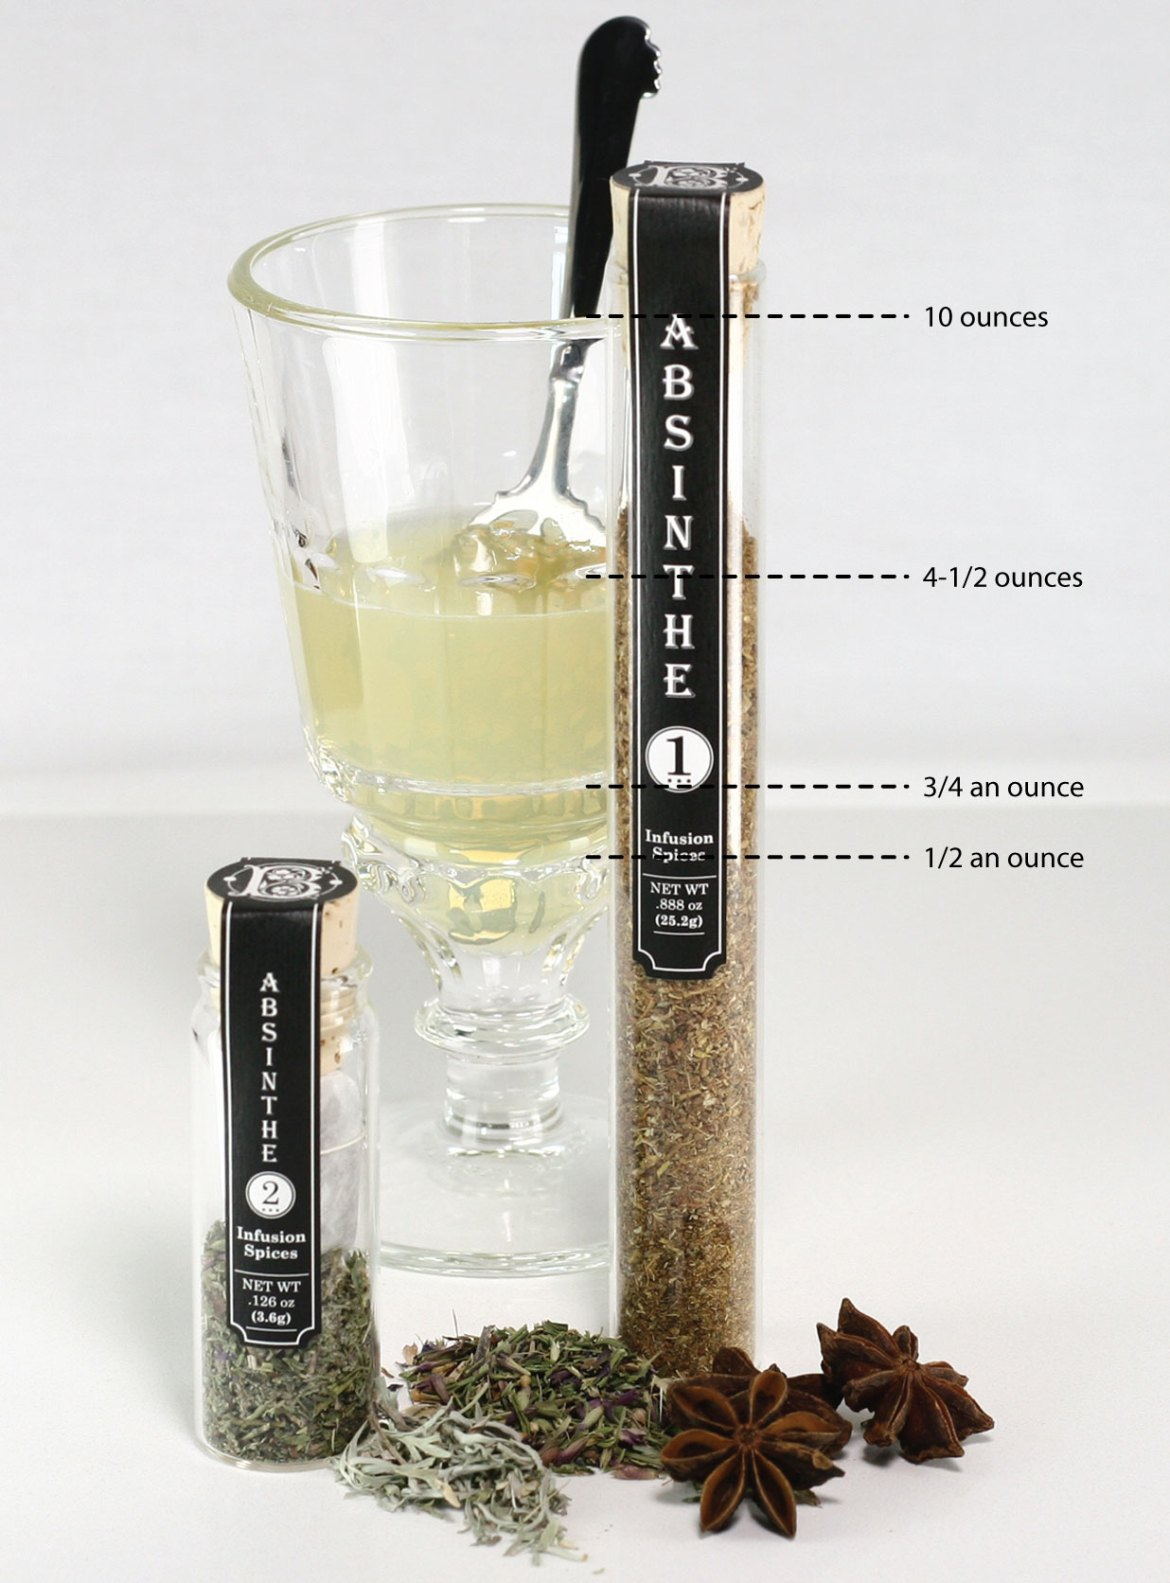 La Rochere Absinth Glass Measurments